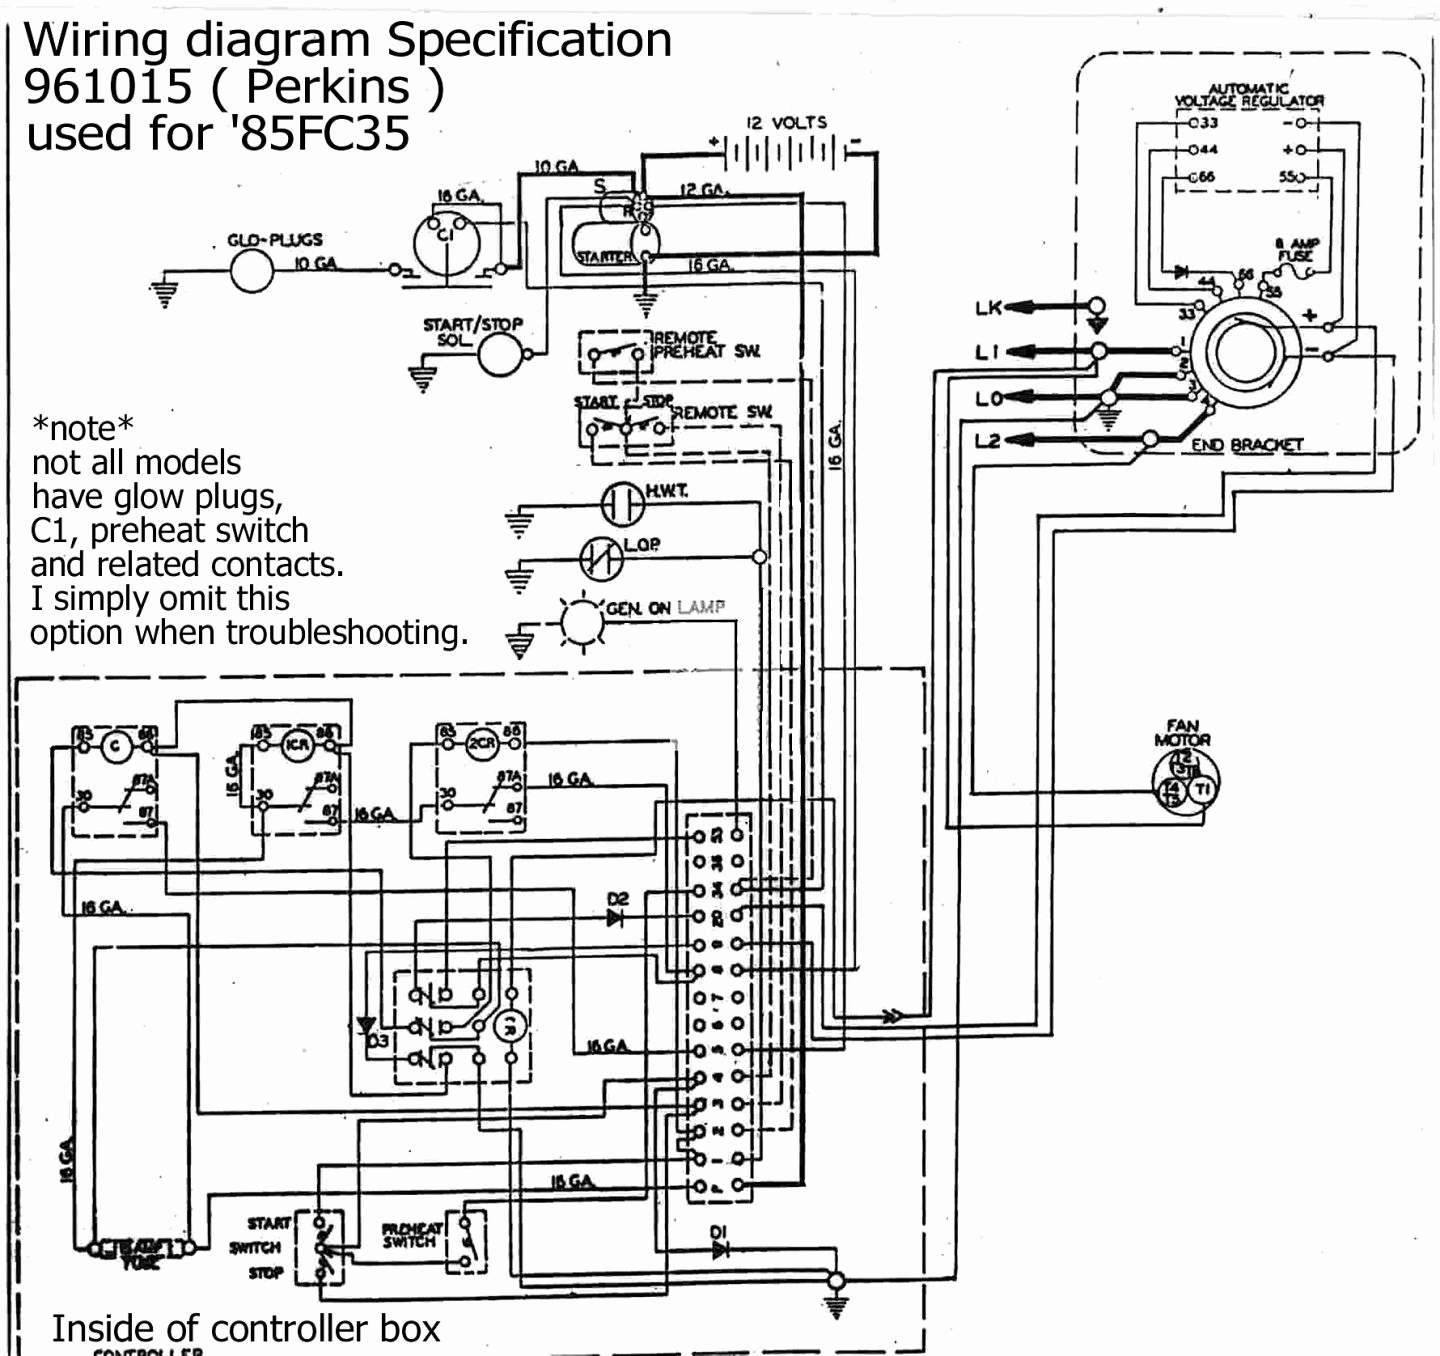 Wiring Diagram Backup Generator